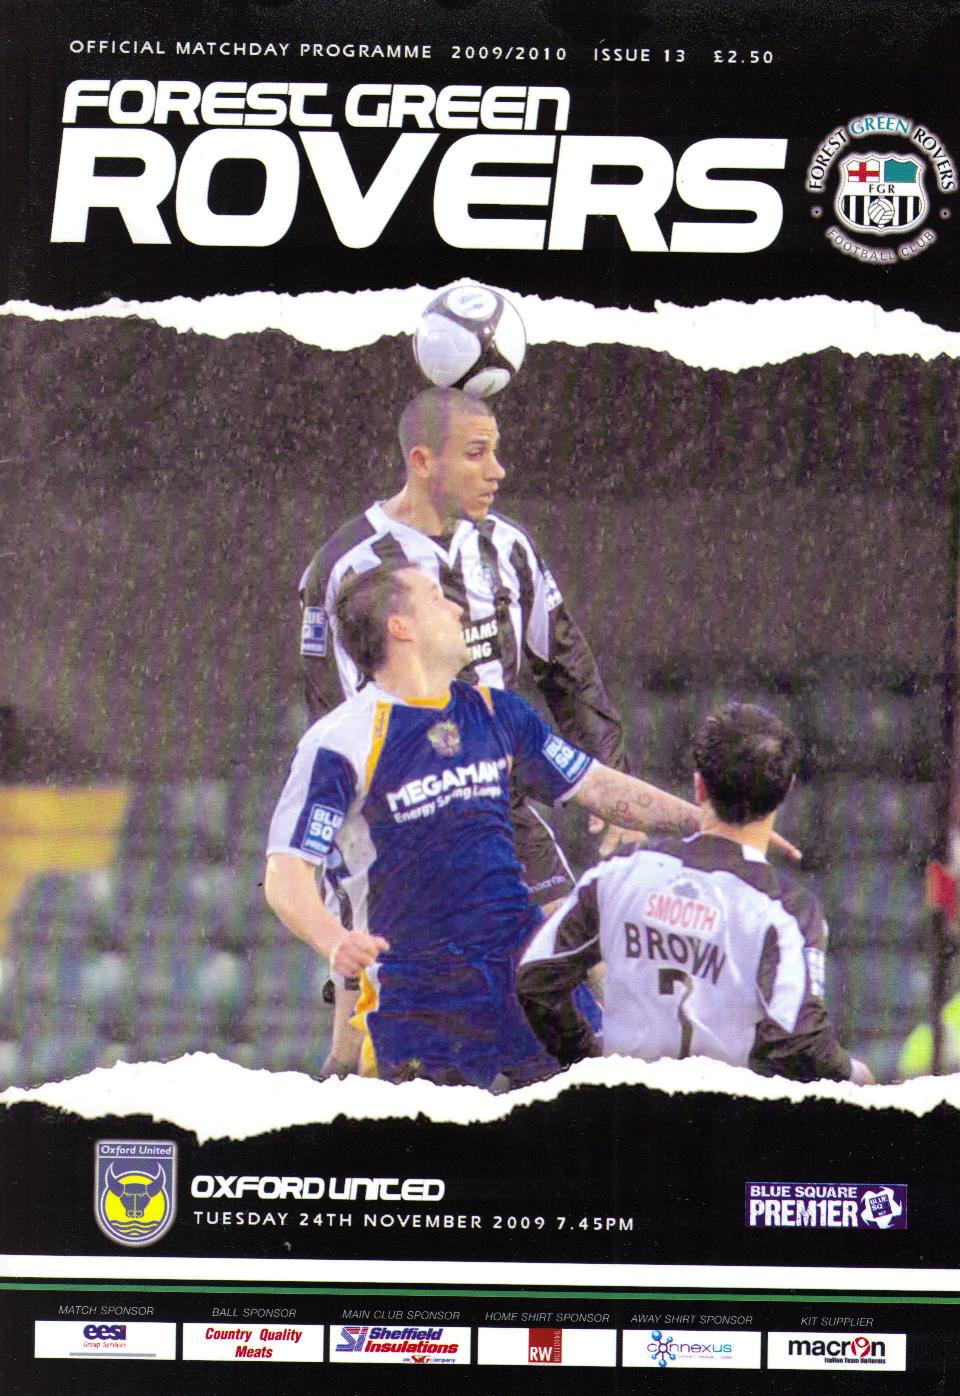 FOREST GREEN ROVERS v OXFORD UNITED 2009/10